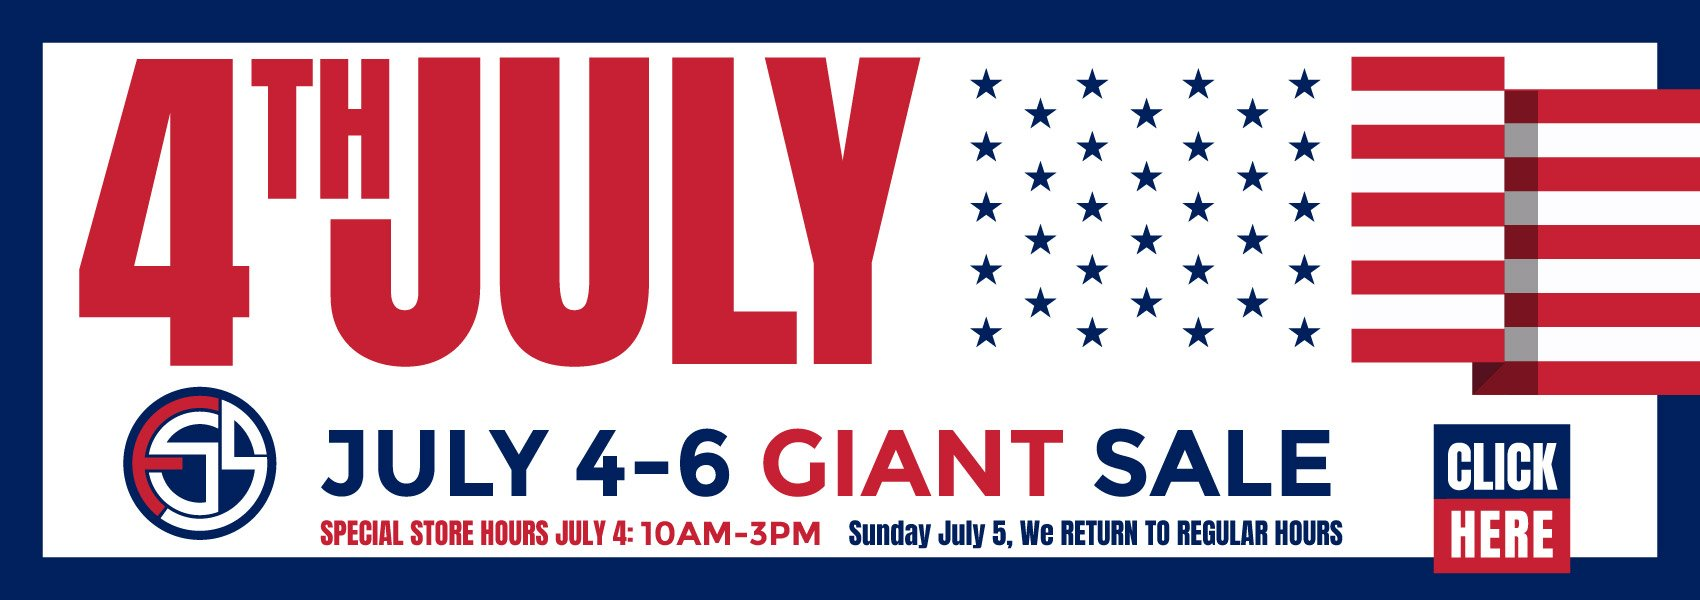 4th July Giant Sale